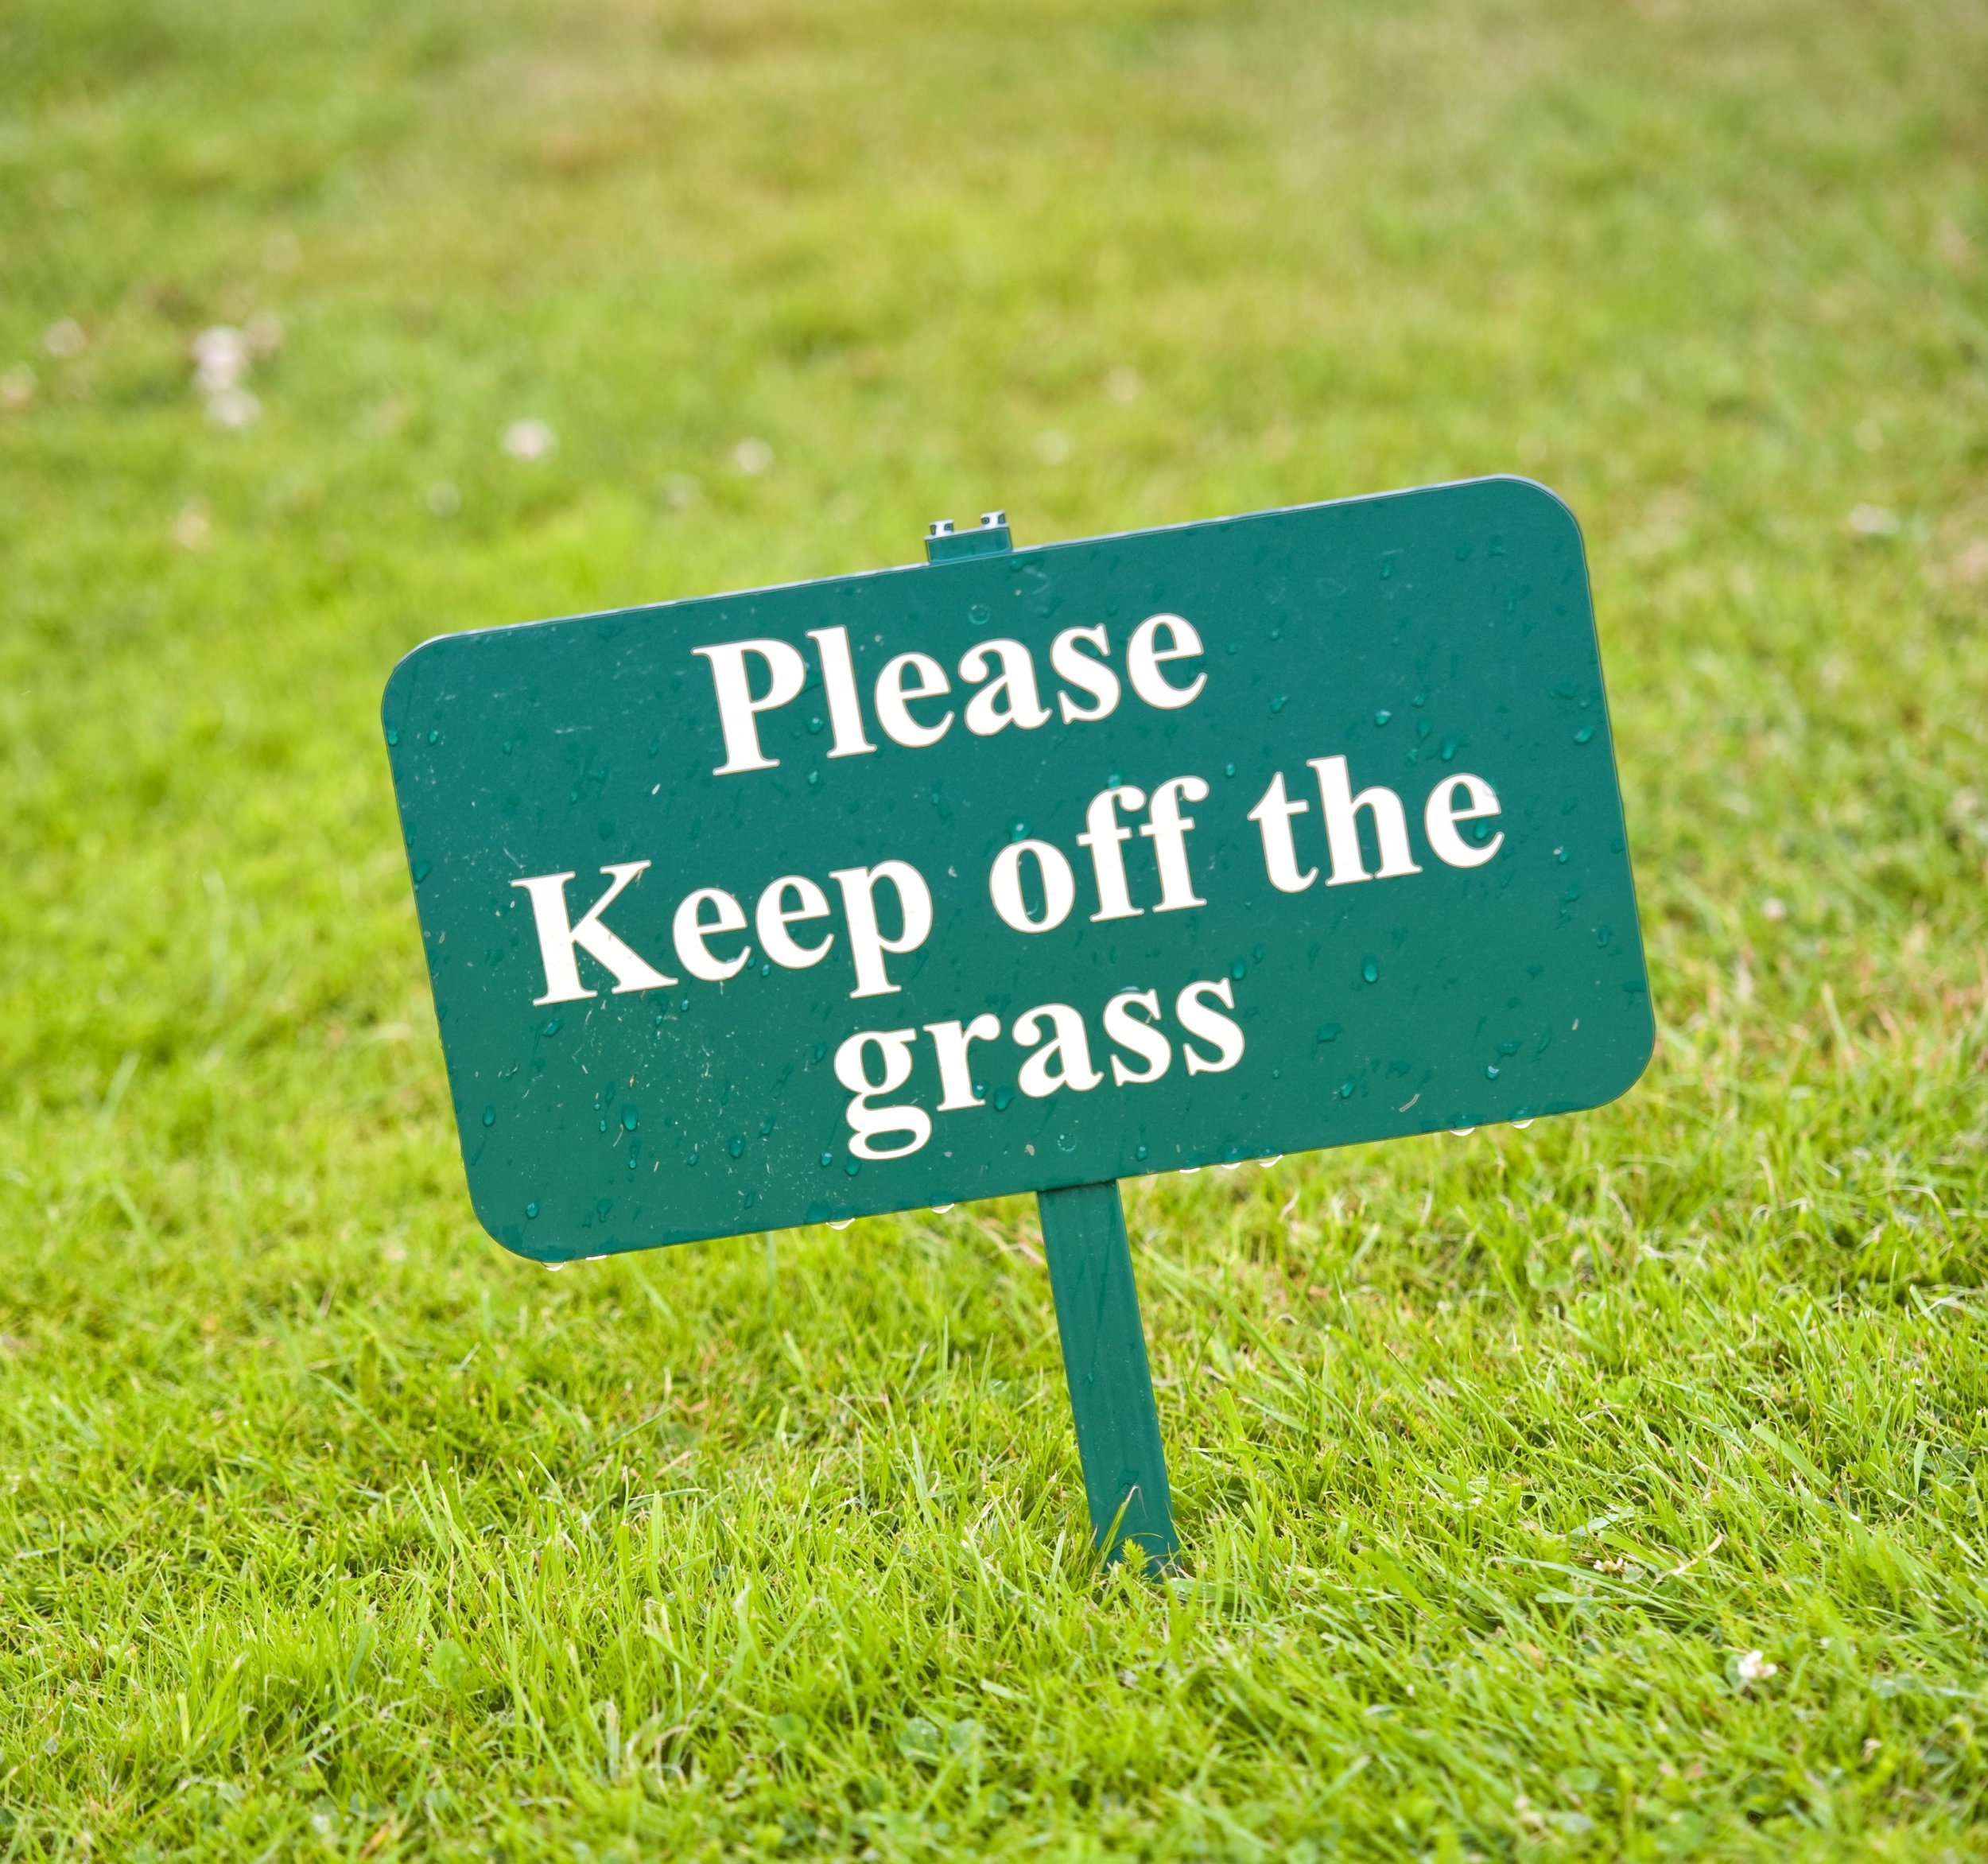 Stay OFF! - Keep the foot traffic to a minimum while the ground is still cold or frozen. It could damage the grass and leave it open to disease and other problems.